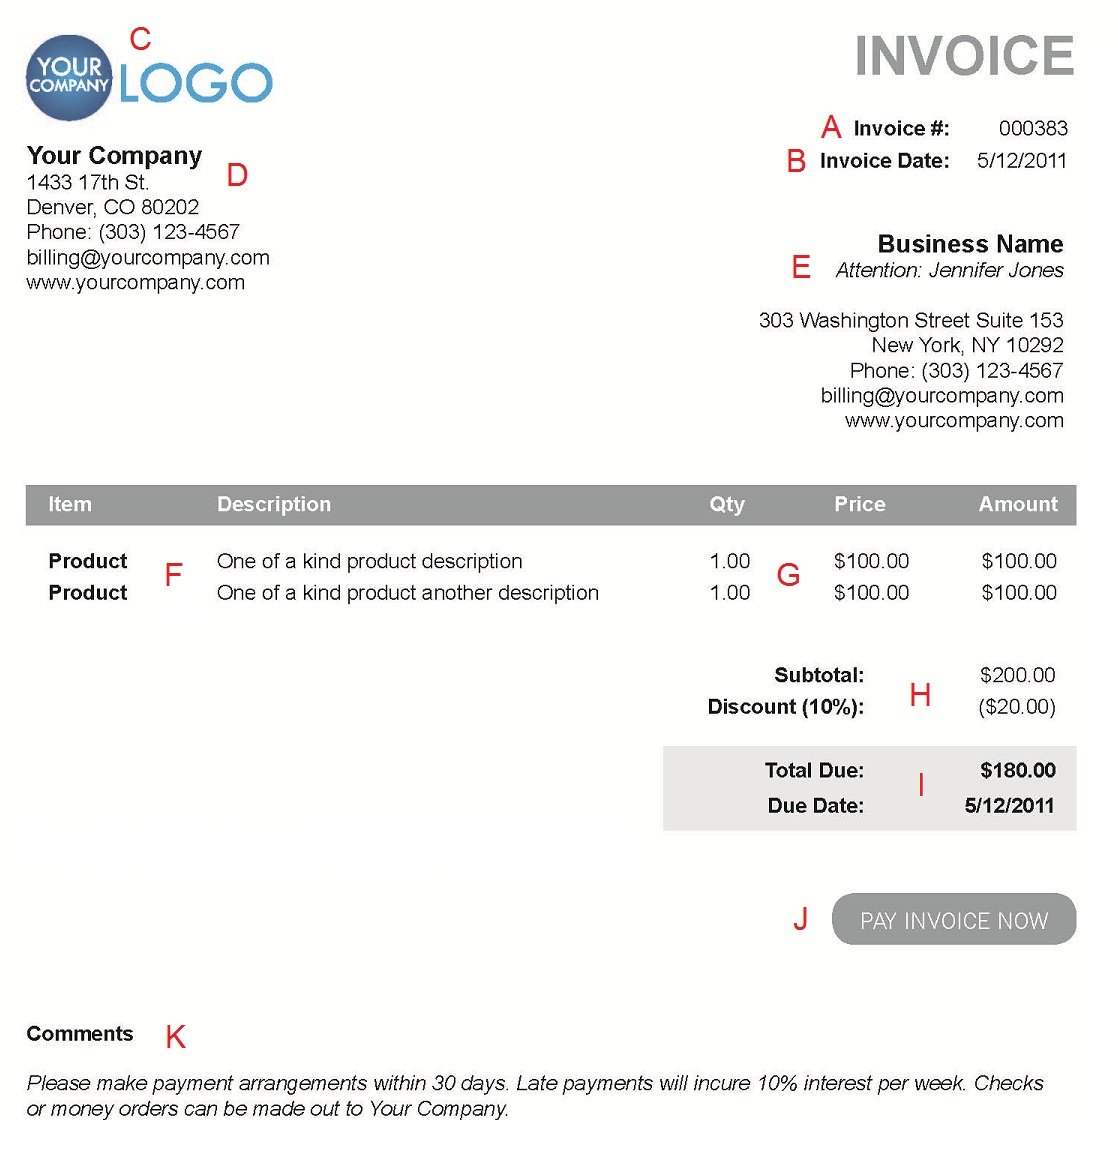 Usdgus  Pretty The  Different Sections Of An Electronic Payment Invoice With Heavenly A  With Beauteous What An Invoice Also Invoice Printer Machine In Addition How To Process Invoices And Free Excel Invoice Templates As Well As Consignment Invoice Template Additionally Fedex Commercial Invoice Pdf From Paysimplecom With Usdgus  Heavenly The  Different Sections Of An Electronic Payment Invoice With Beauteous A  And Pretty What An Invoice Also Invoice Printer Machine In Addition How To Process Invoices From Paysimplecom